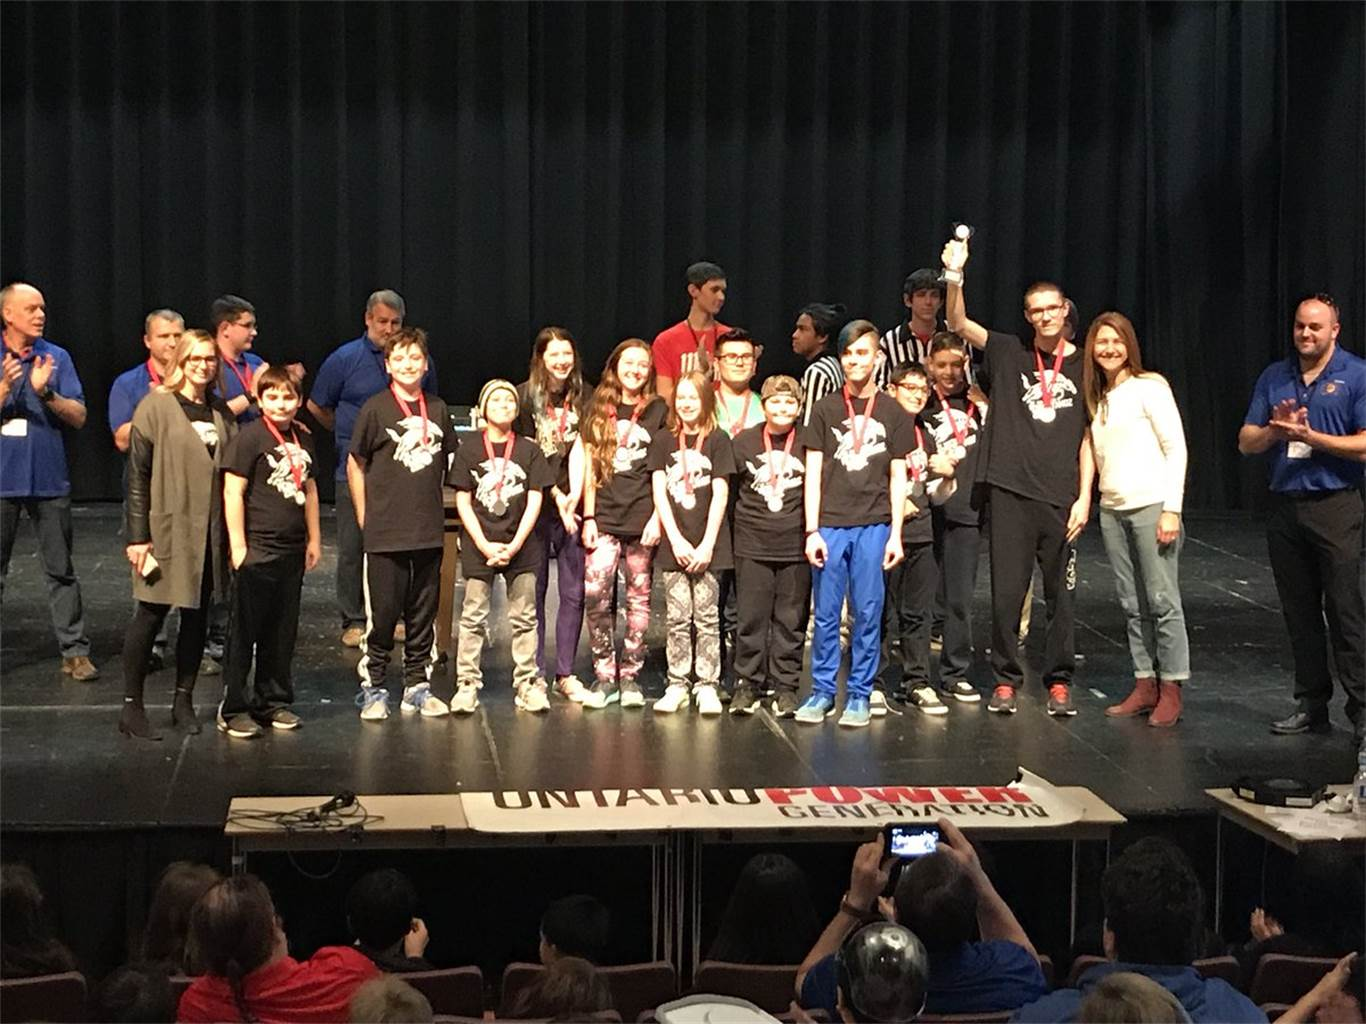 St. Matthew Robostangz Team 28112 was one of three top teams from the FIRST LEGO League Niagara Regional Qualifier on Dec. 2. The Team will advance to the FIRST LEGO League Provincial Tournament at the University of Waterloo in January.